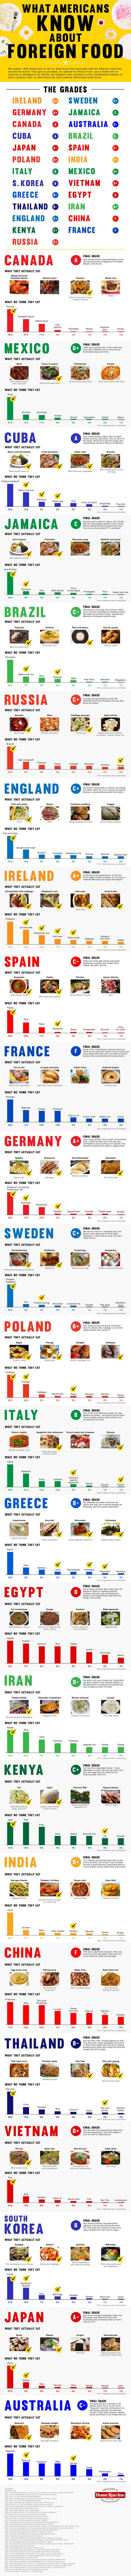 foreign foods infographic